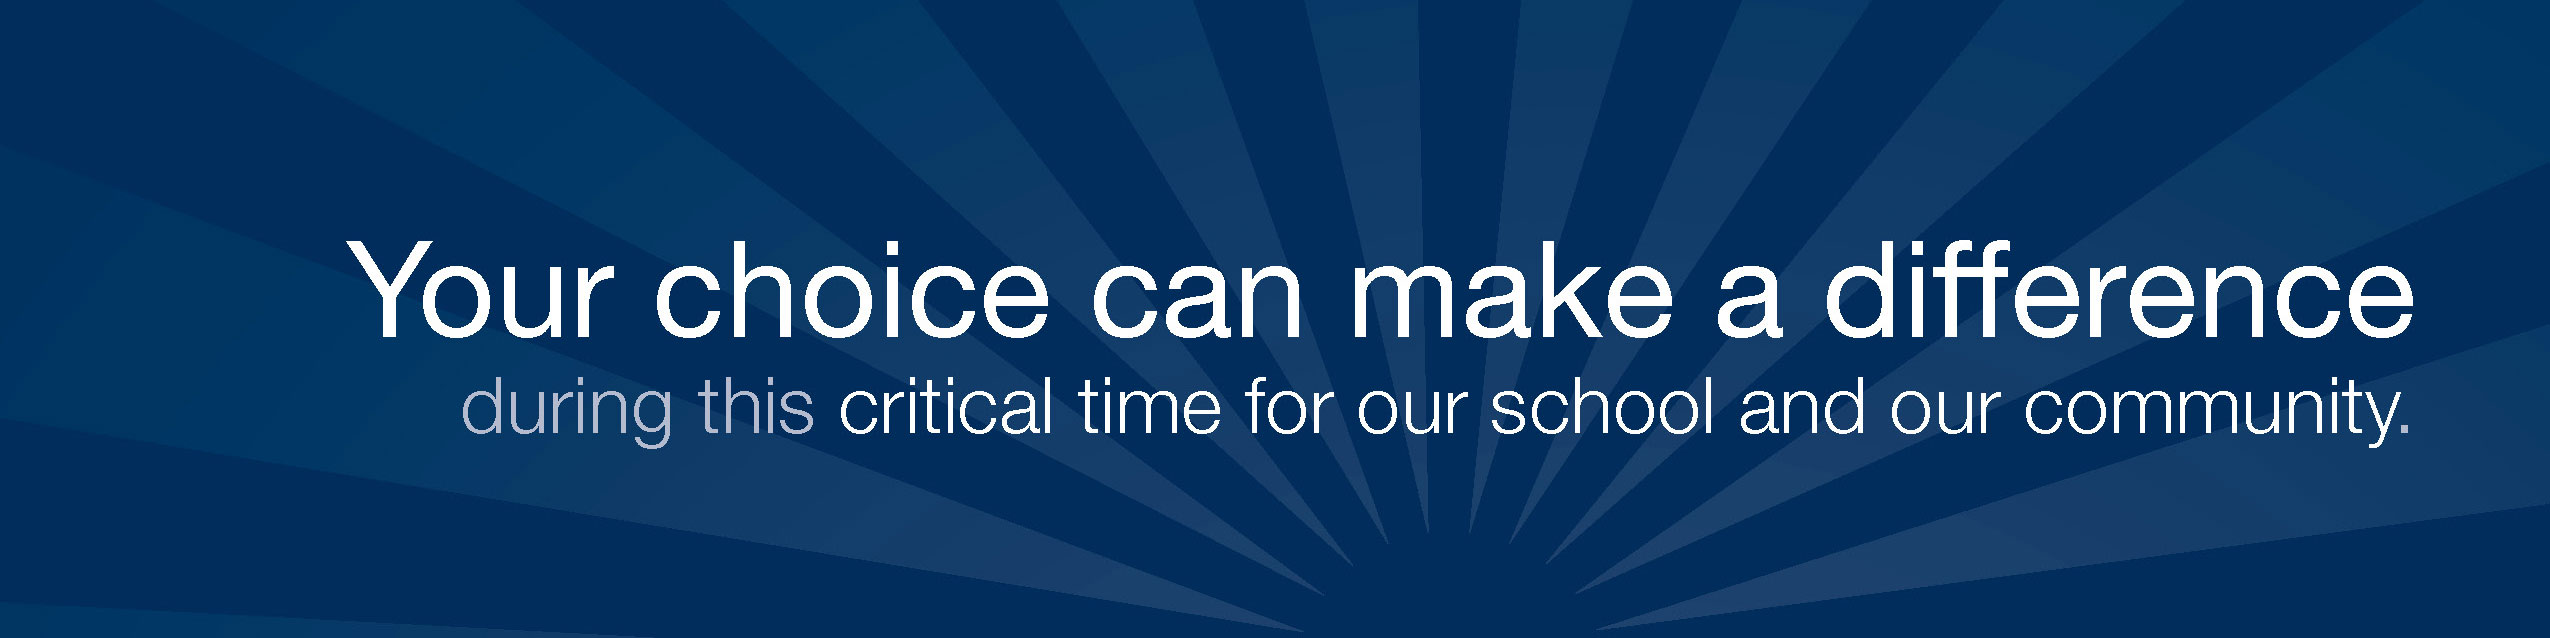 MCDS Fund: Your choice can make a difference during this critical time for our school and our community.